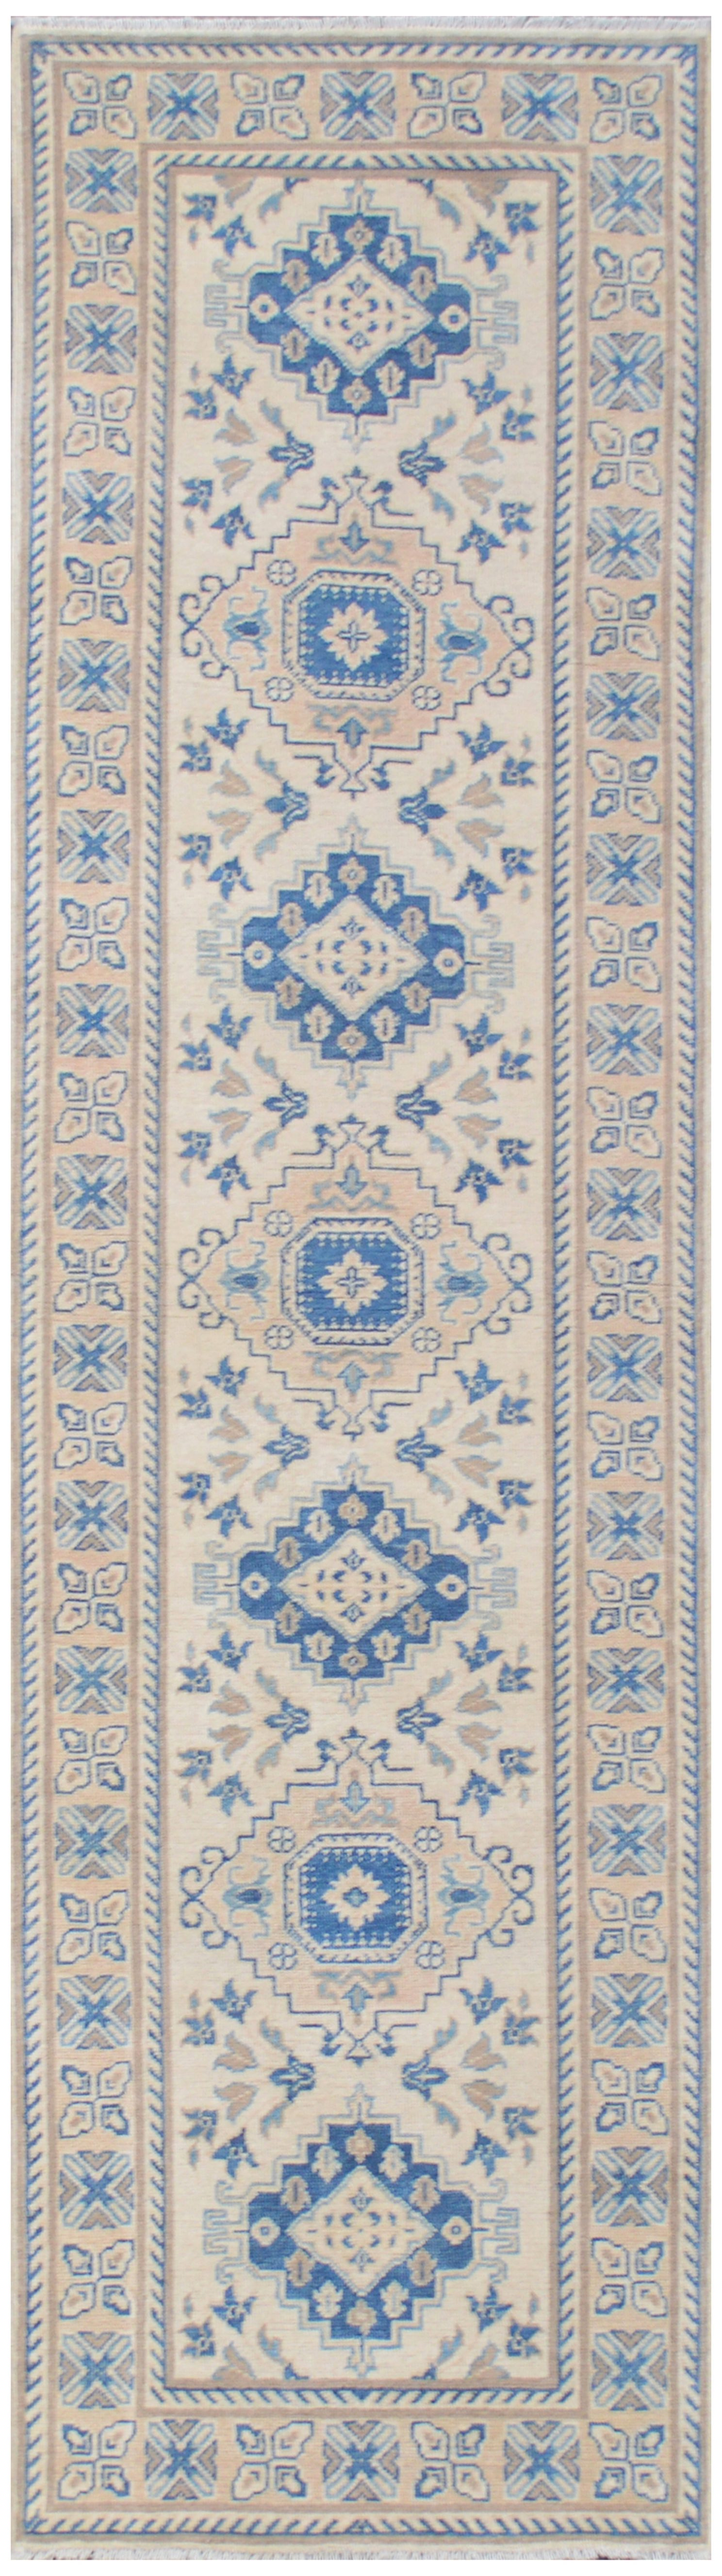 Hallway rug ideas  Handmade Sultan Collection Hallway Runner    The Block Shop